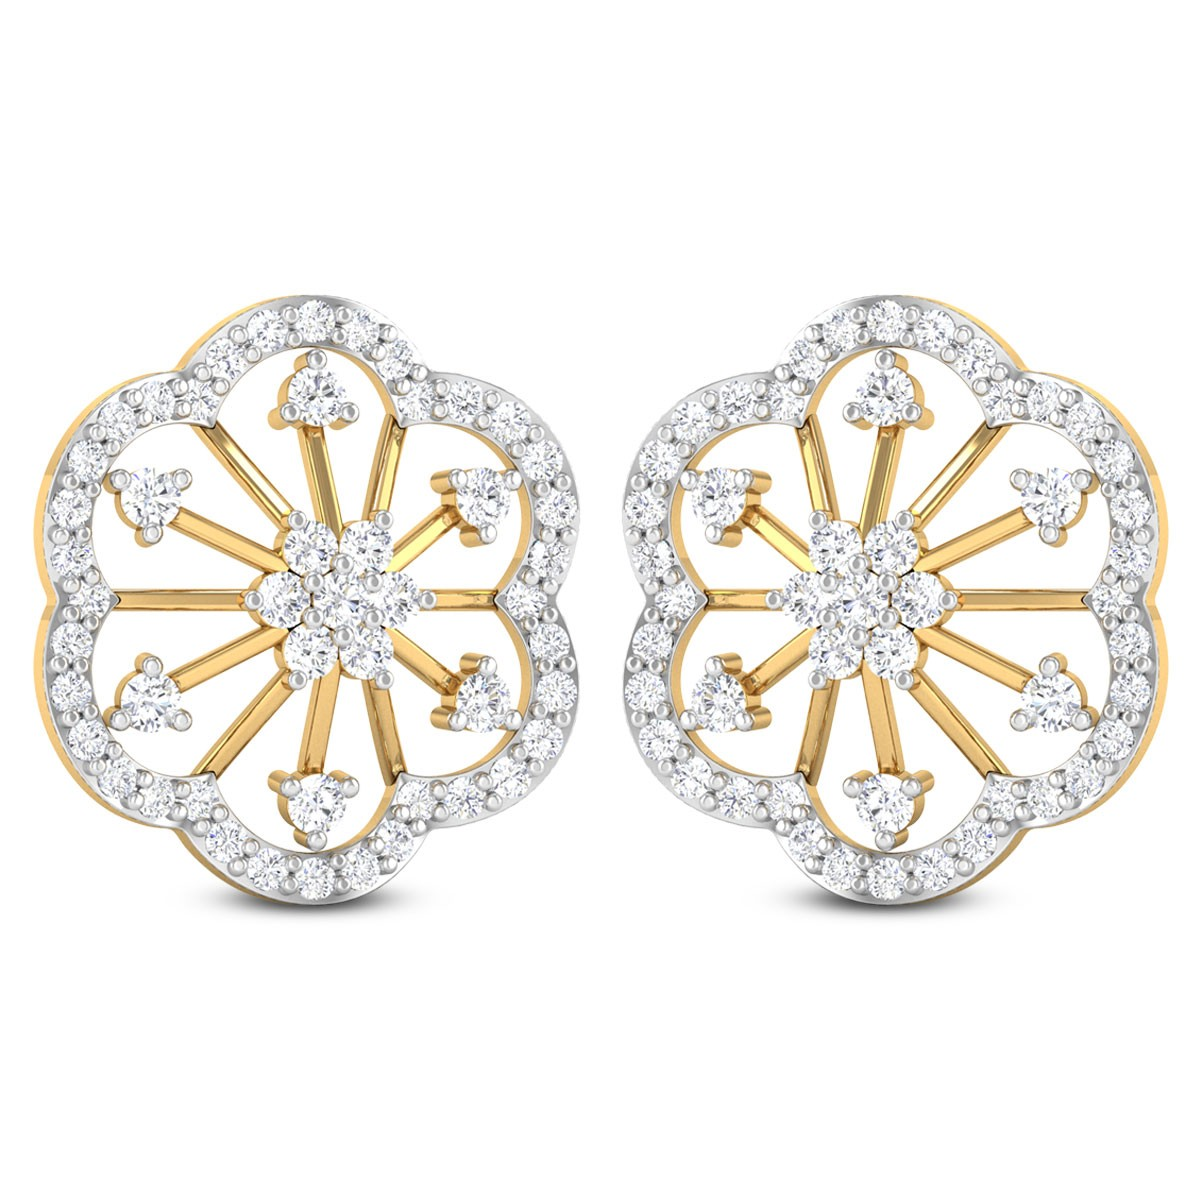 Noreen Floral Diamond Stud Earring